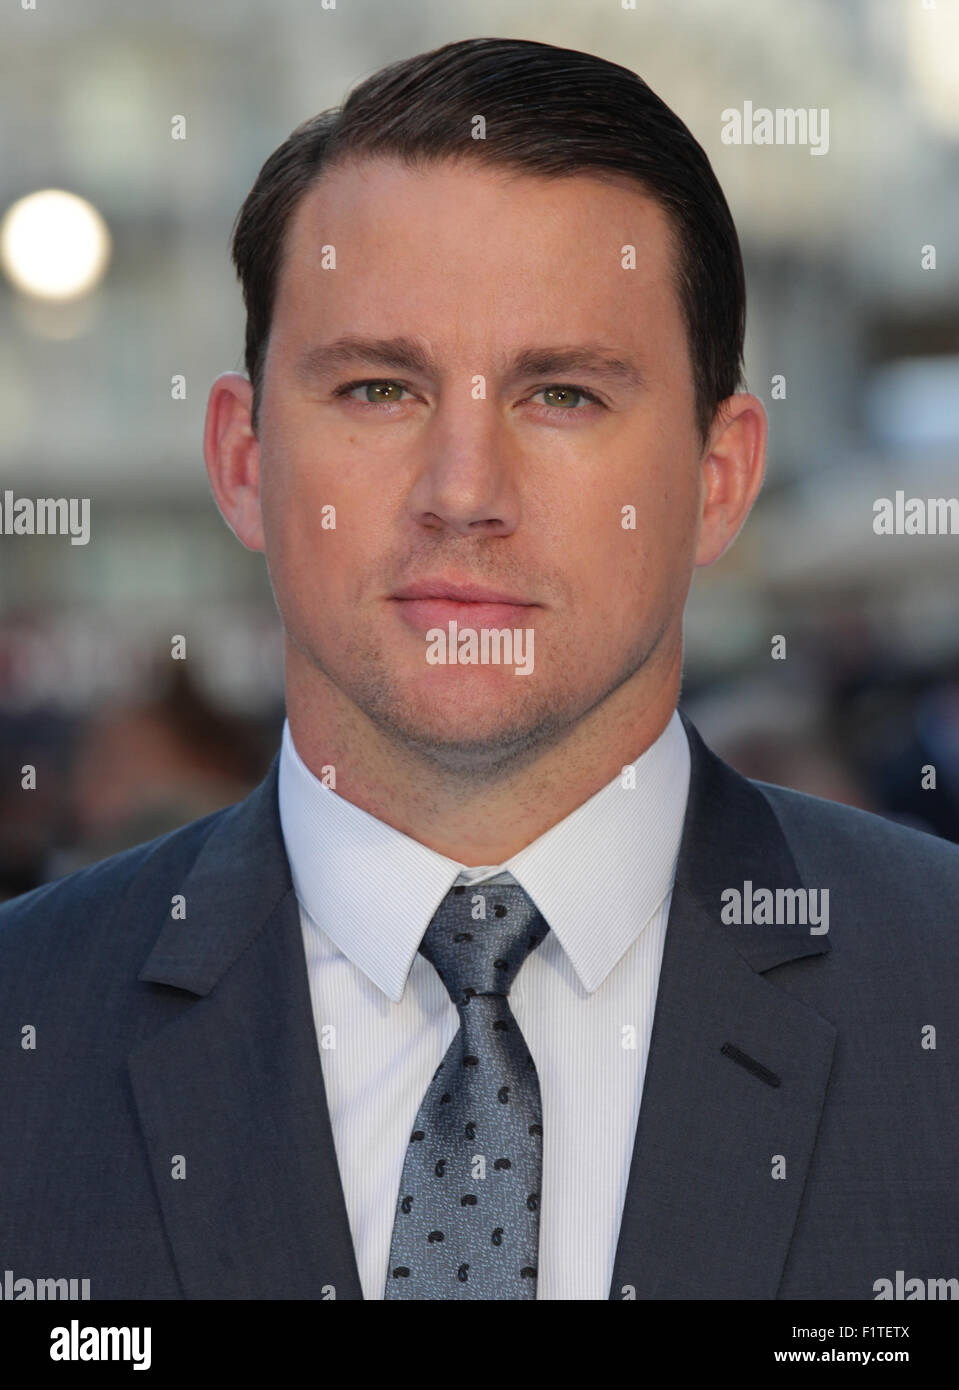 LONDON, UK, 30. Juni 2015: Channing Tatum besucht den Magic Mike: XXL - britischen Filmpremiere, Leicester Square Stockbild